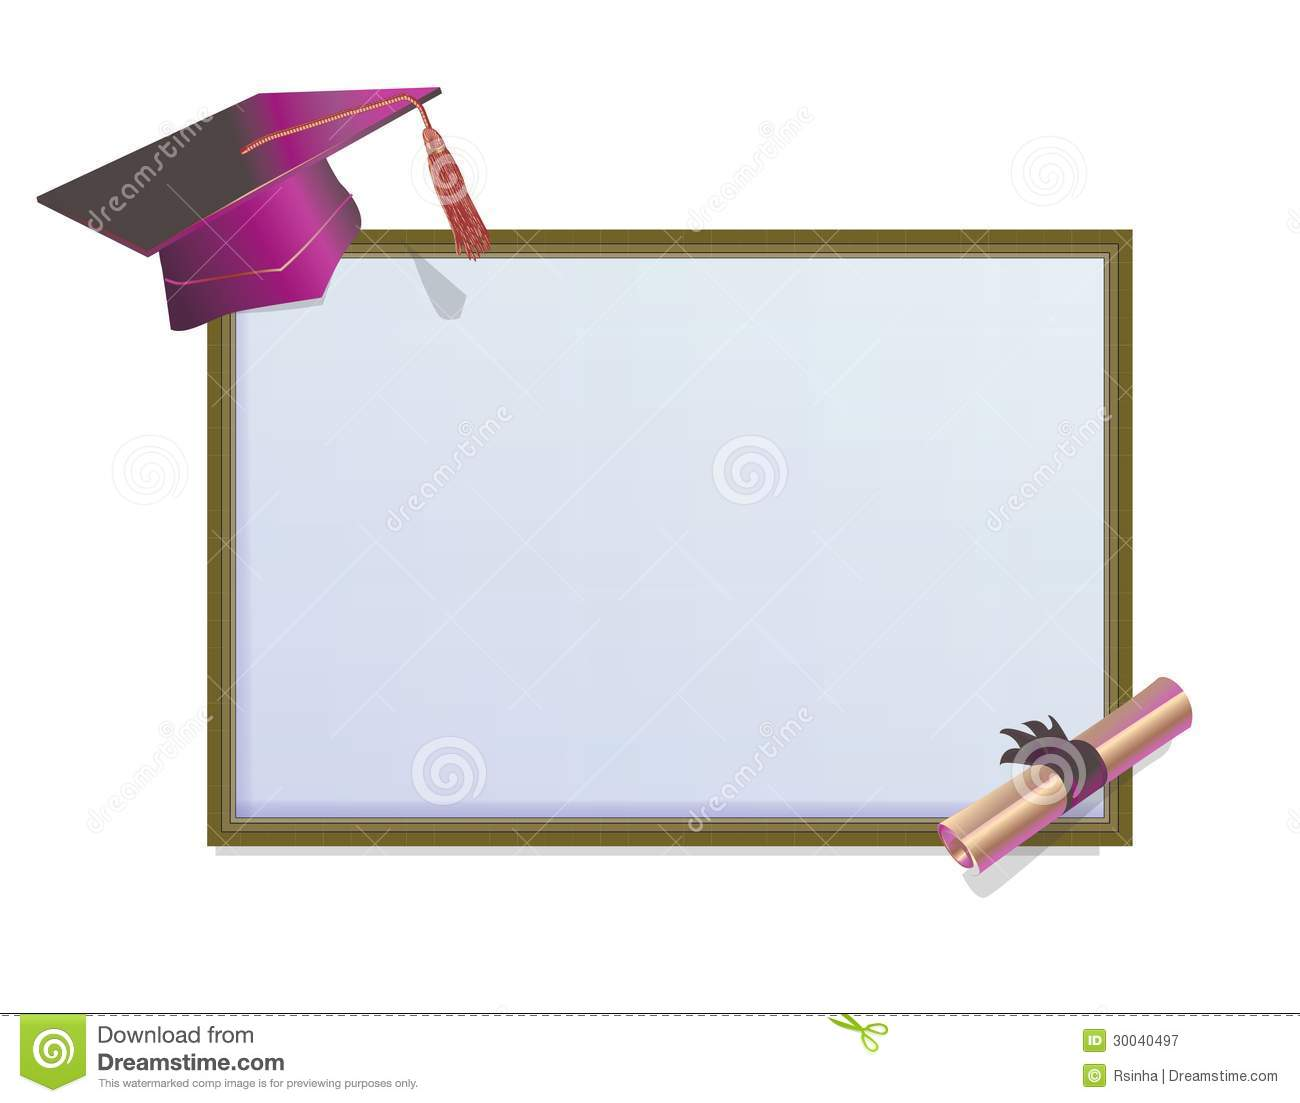 Graduation Invitations Borders 2014 Graduation invitation cardGraduation Borders 2014